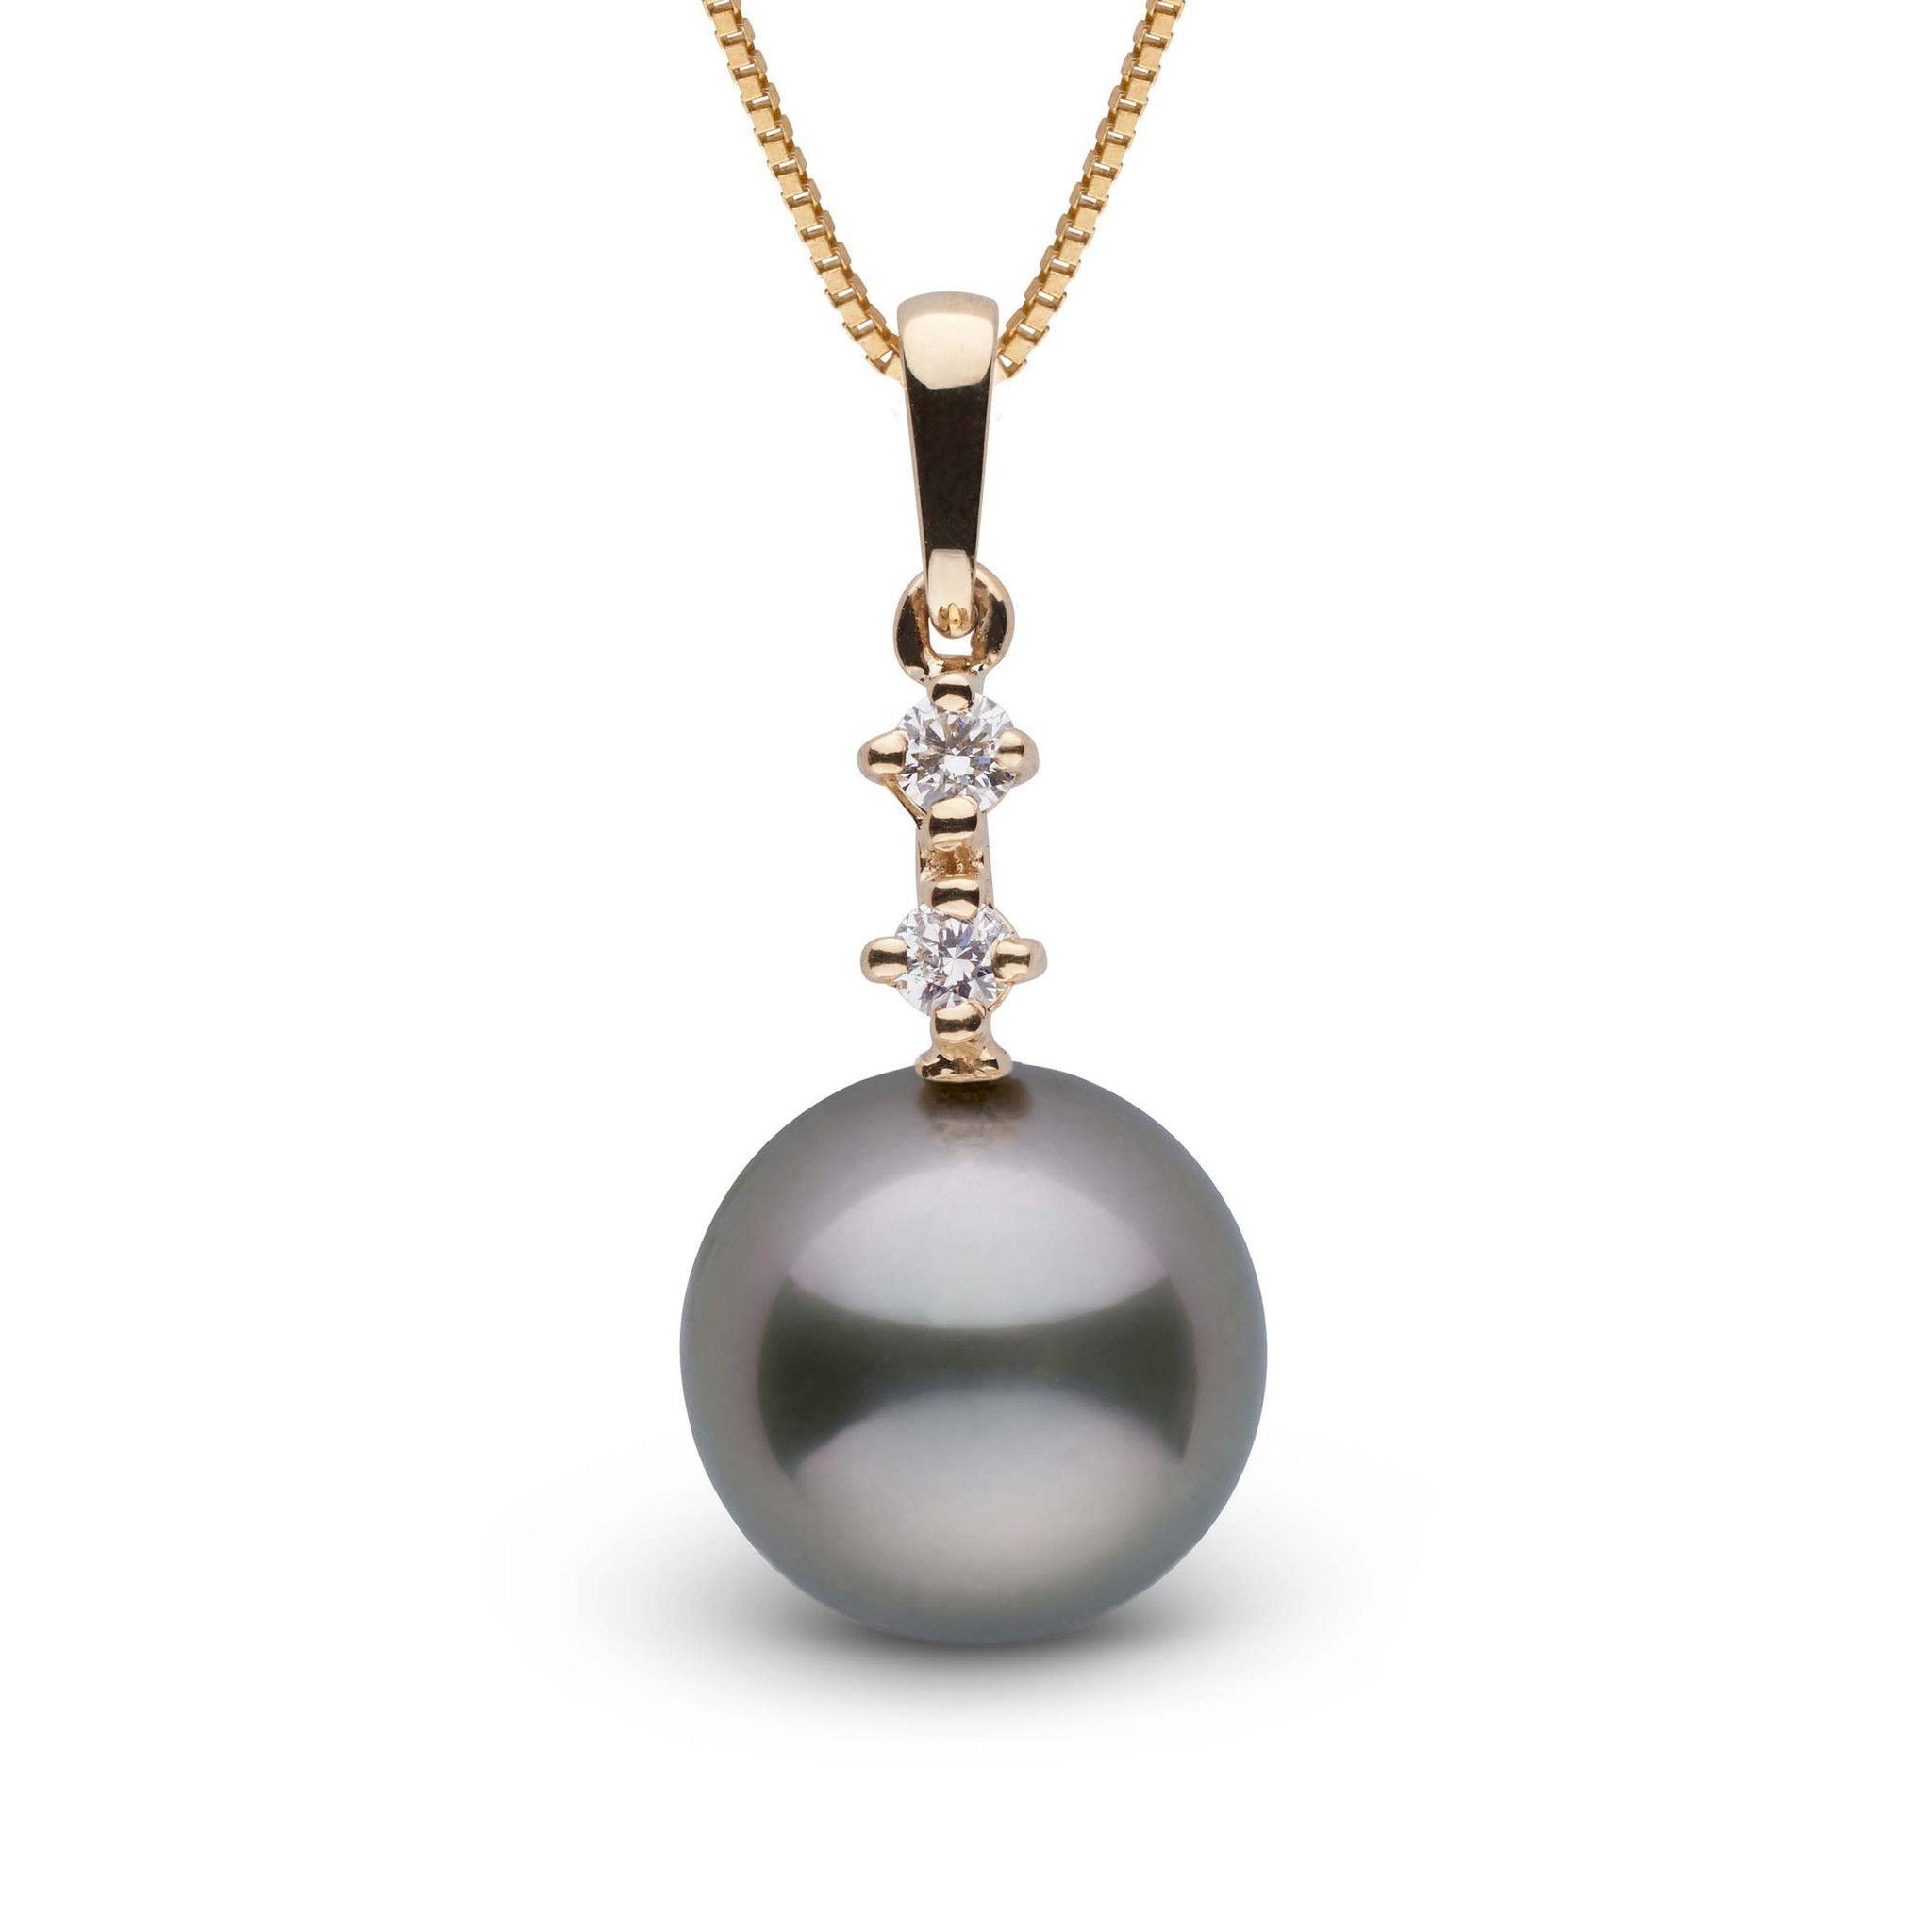 Duet Collection 11.0-12.0 mm Tahitian Baroque Pearl and Diamond Pendant